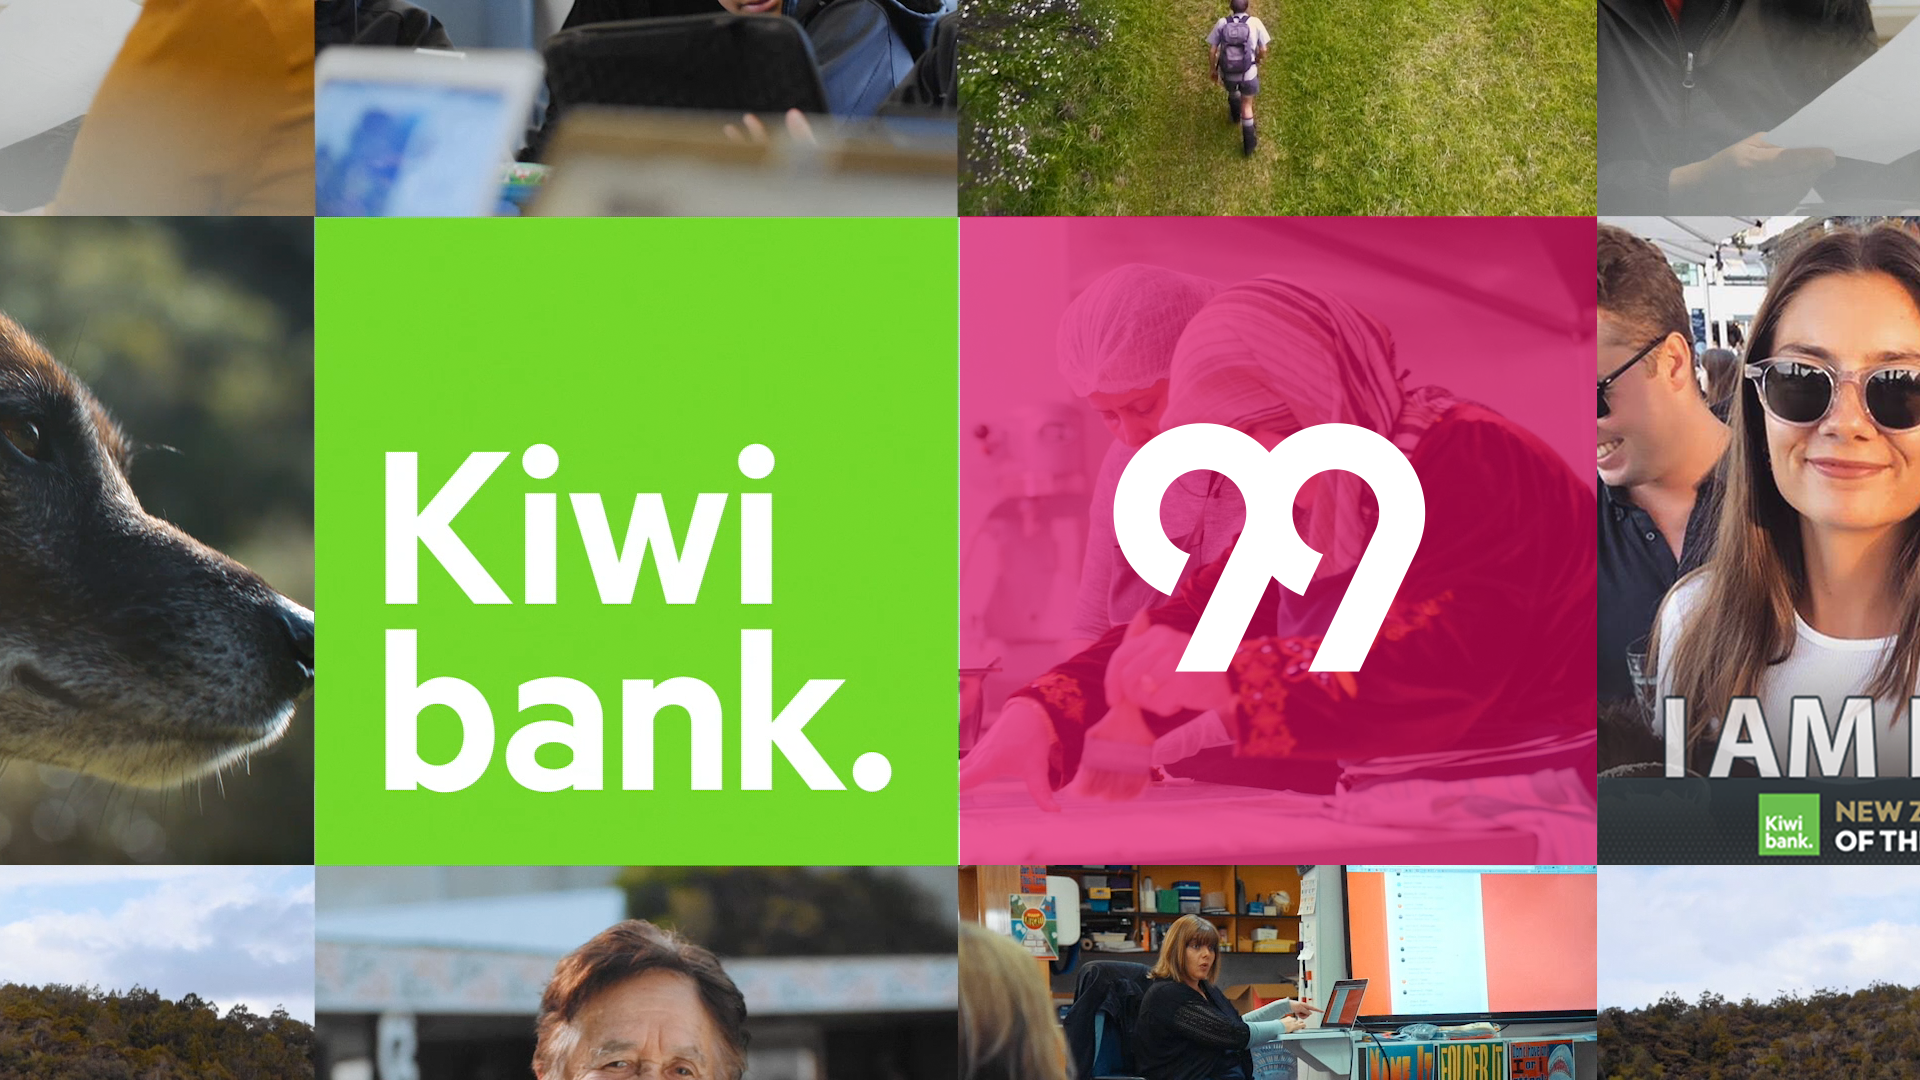 Kiwibank appoints 99 as new lead strategic and creative agency following a competitive pitch